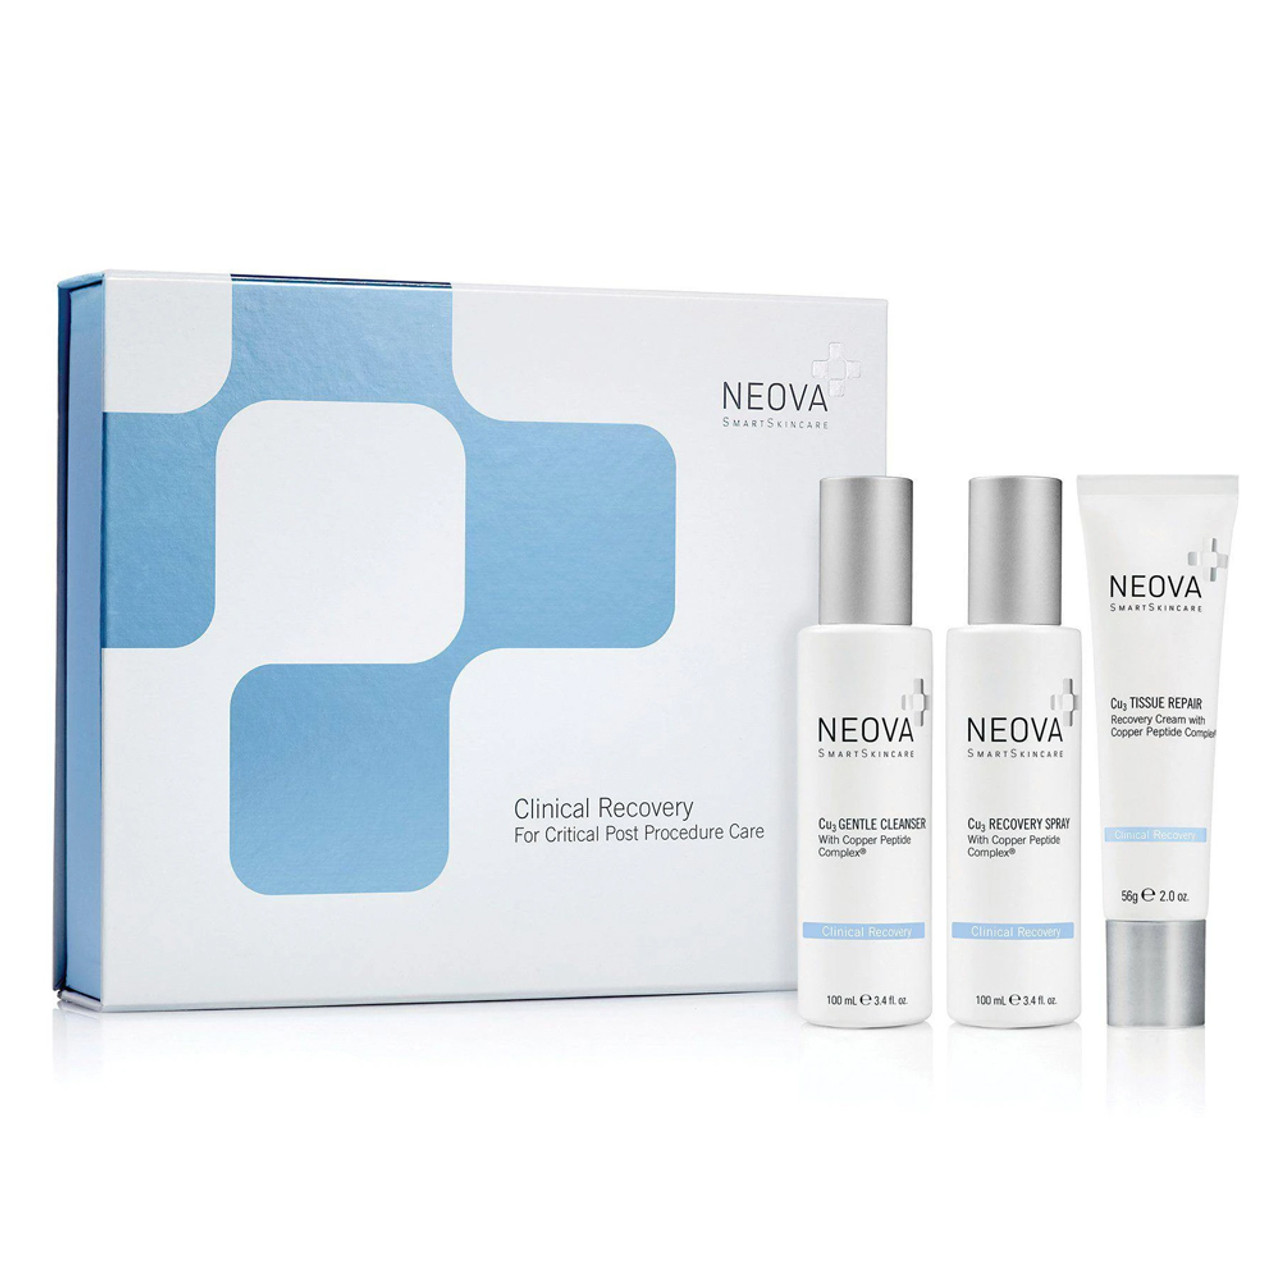 Neova Clinical Recovery Kit